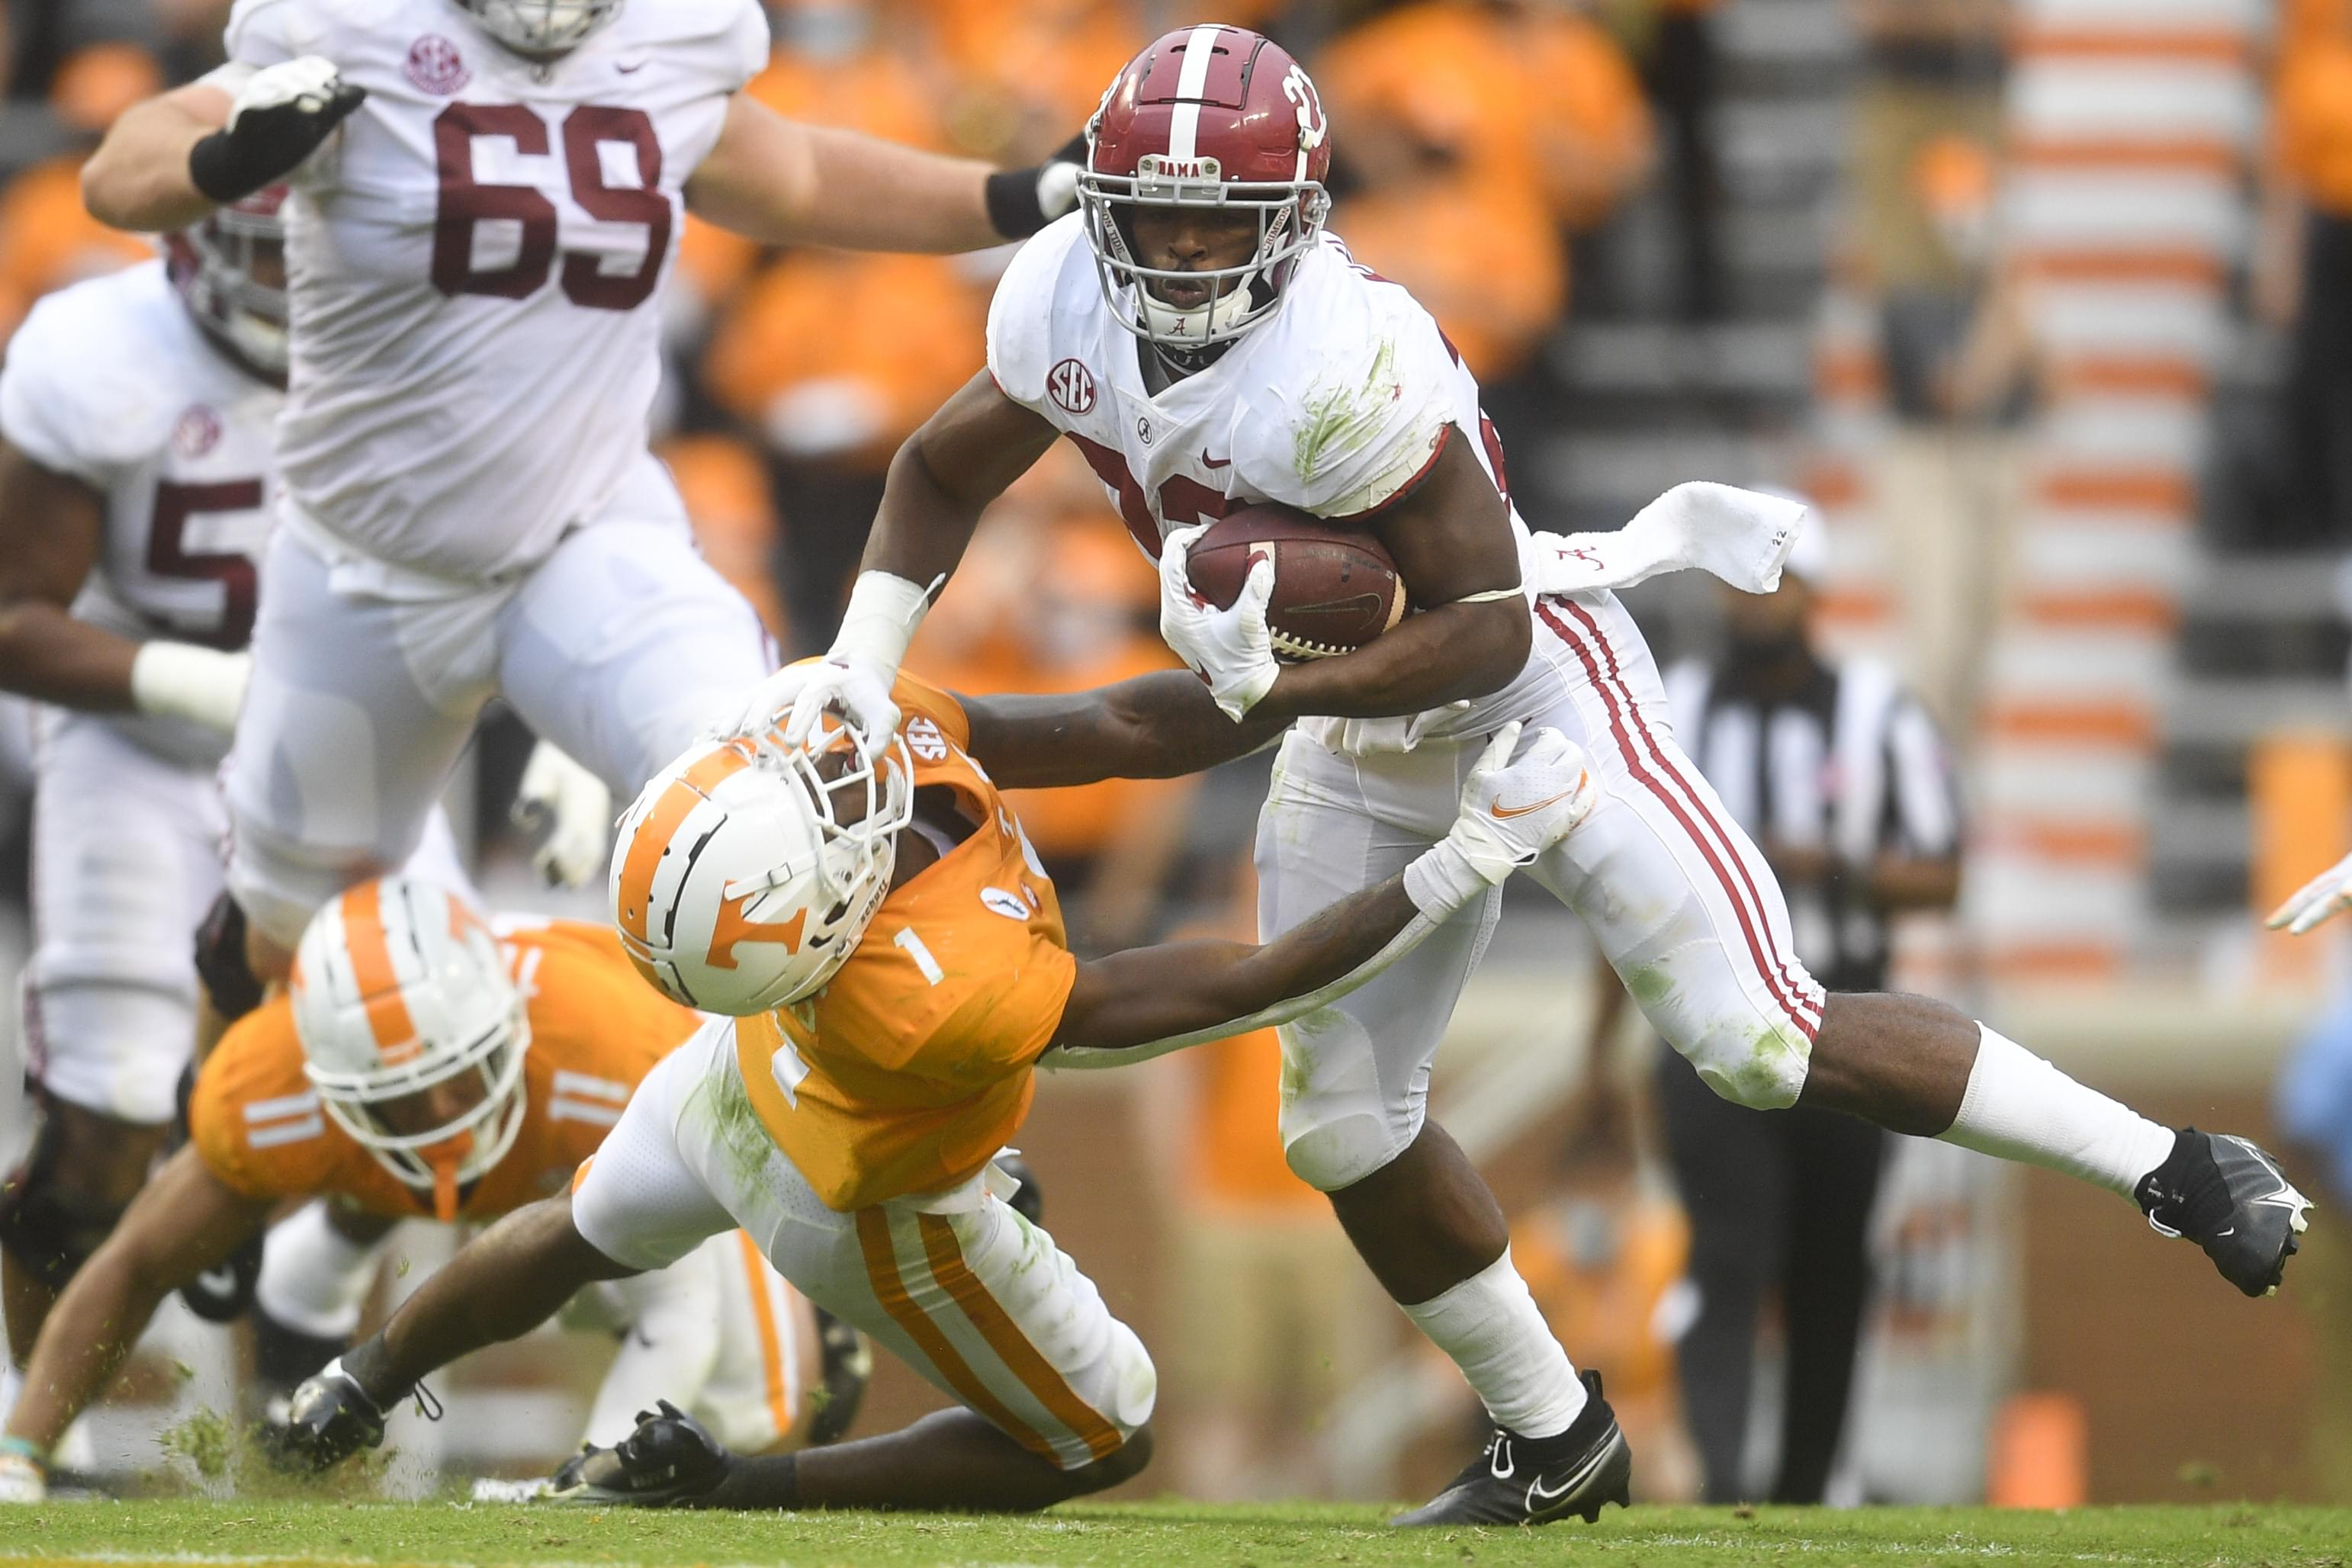 PHOTO GALLERY: Alabama at Tennessee